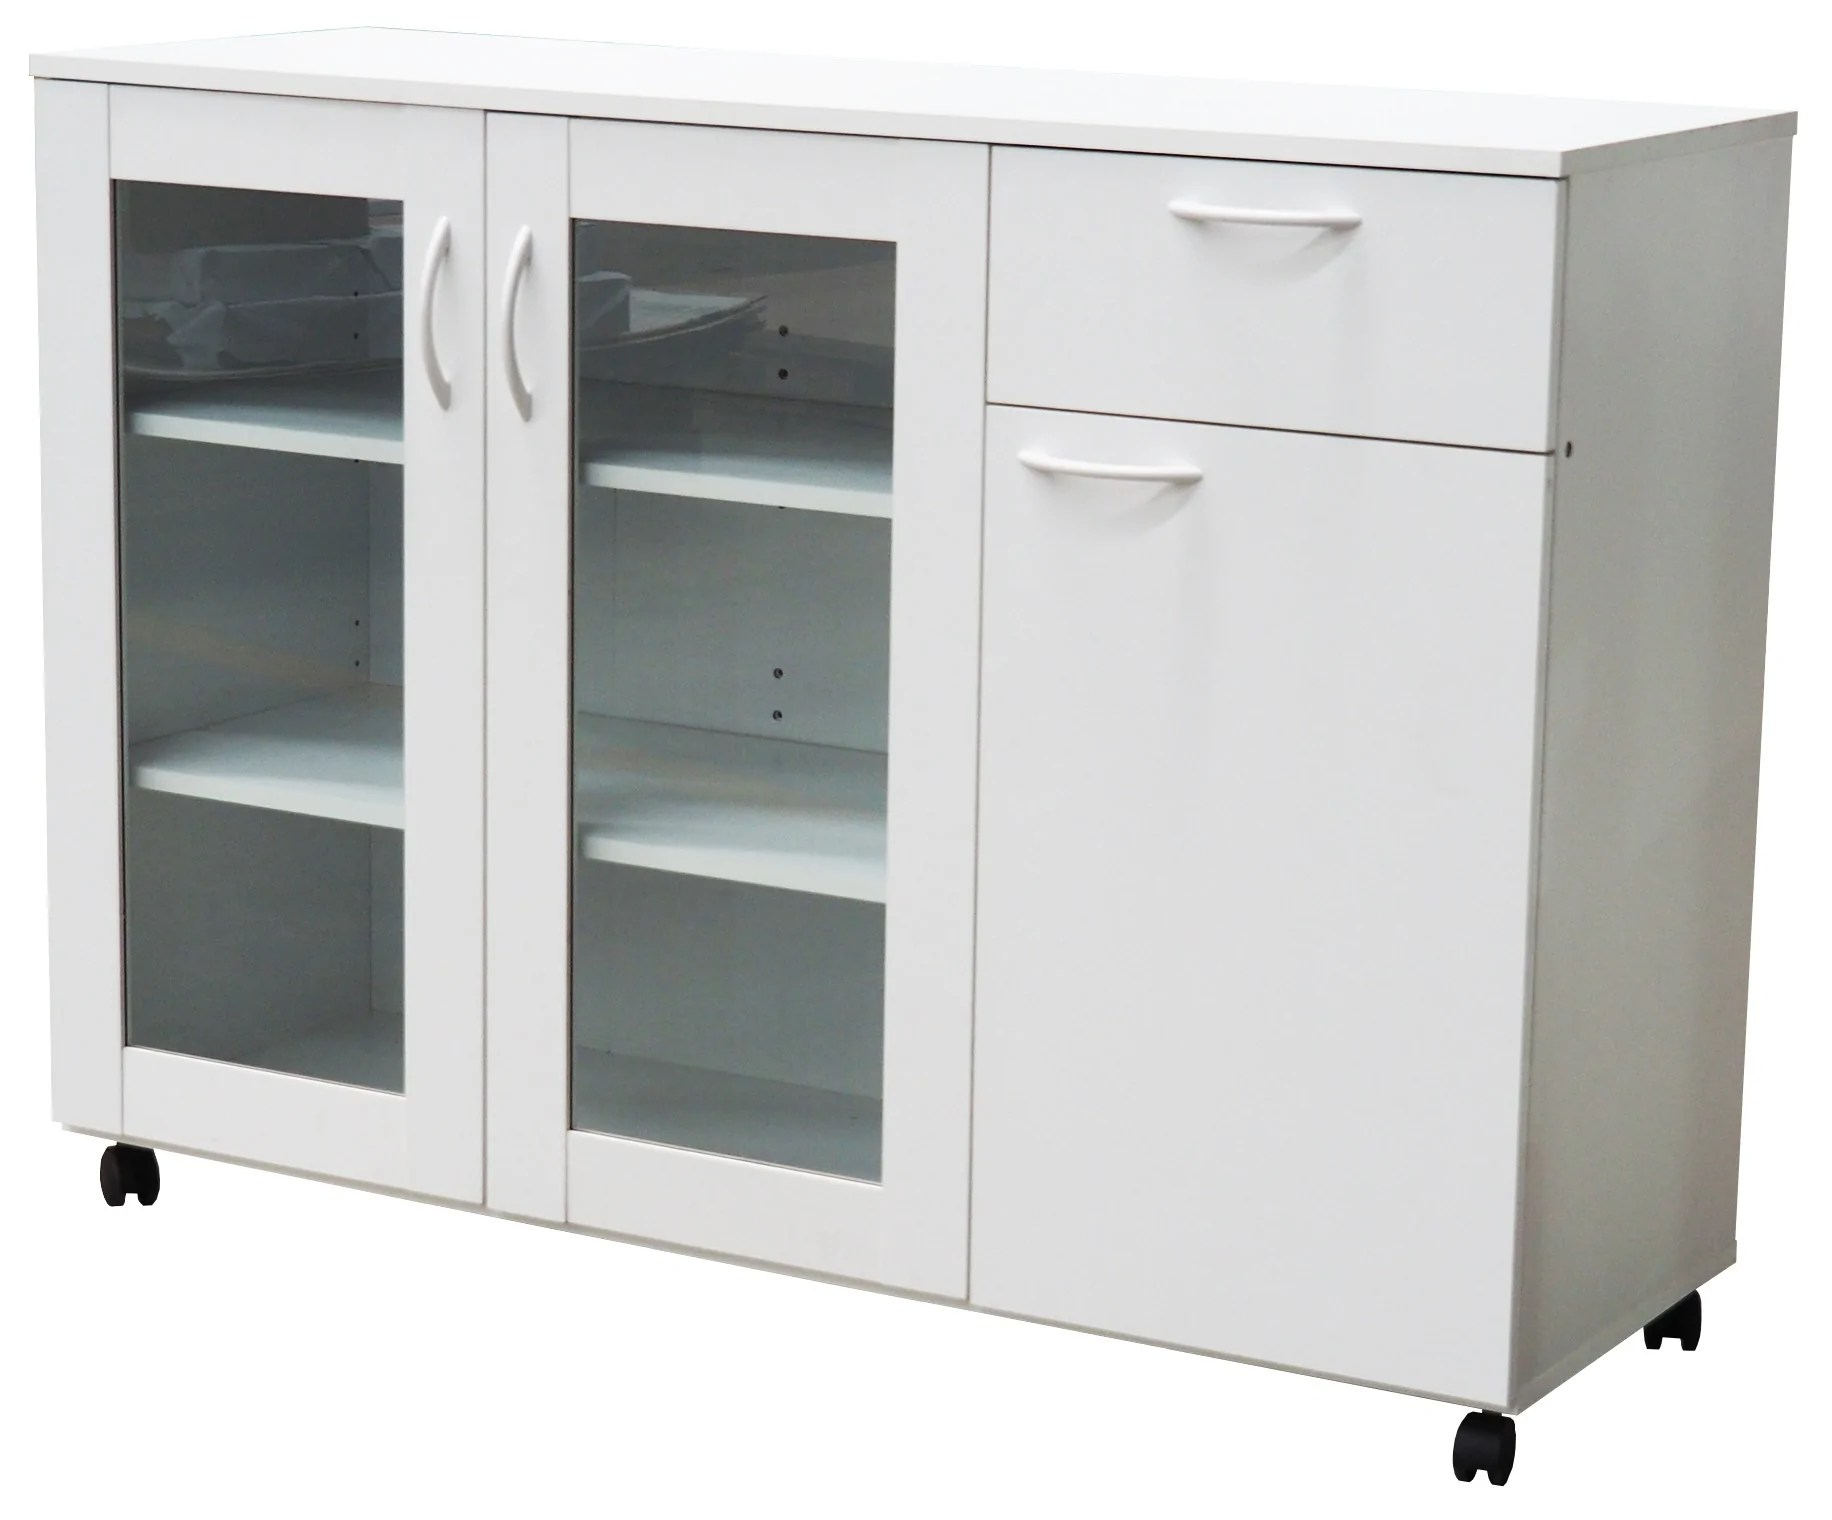 Gremlin Wheeled Kitchen Storage Sideboard Buffet Cabinet With Adjustable Shelves Drawer White Wood Glass Contemporary Pilaster Designs